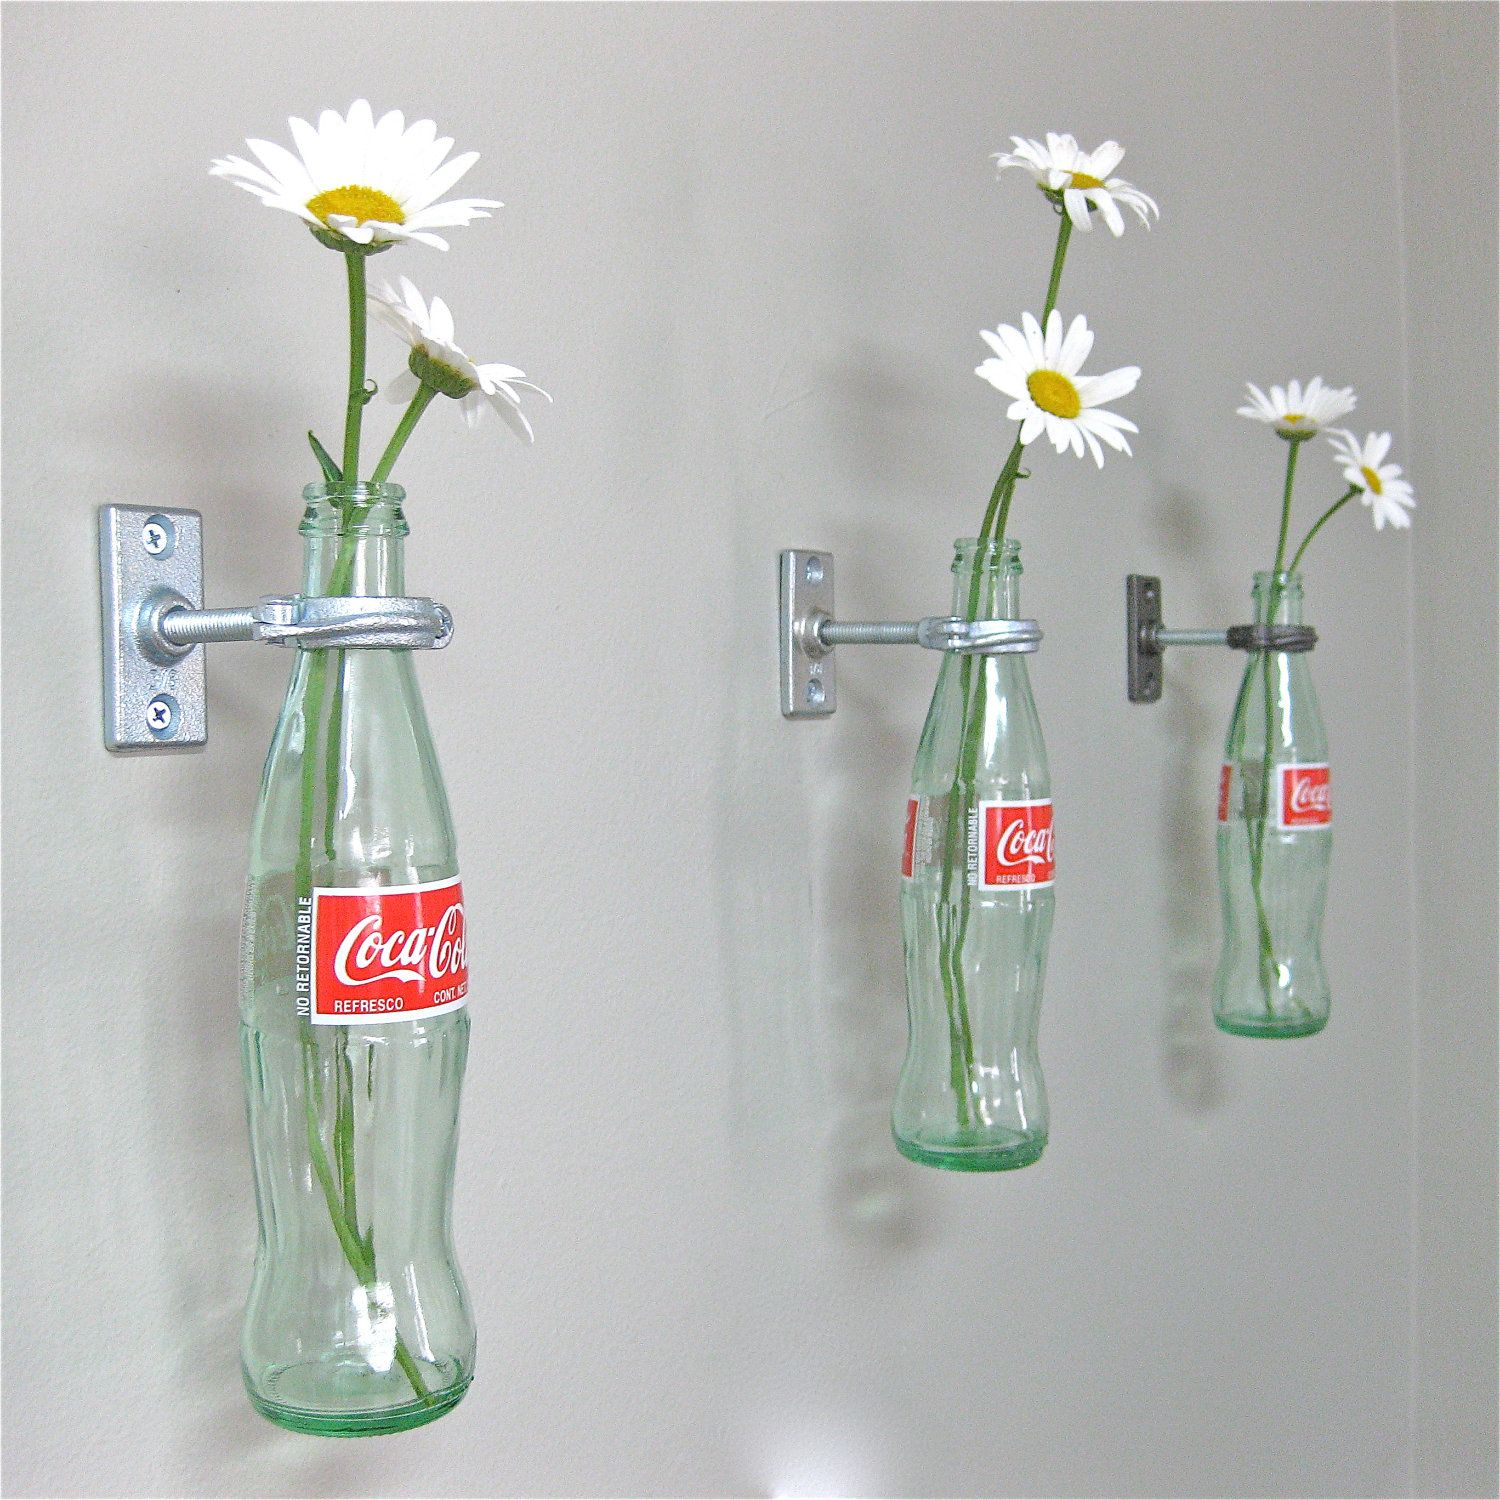 3 coca cola bottle hanging flower vases coke decor vintage 3 cobalt blue wine bottle wall flower vases by greatbottlesoffire 1 coca cola hanging coke decor vintage kitchen mothers day gift for mom nautical home reviewsmspy